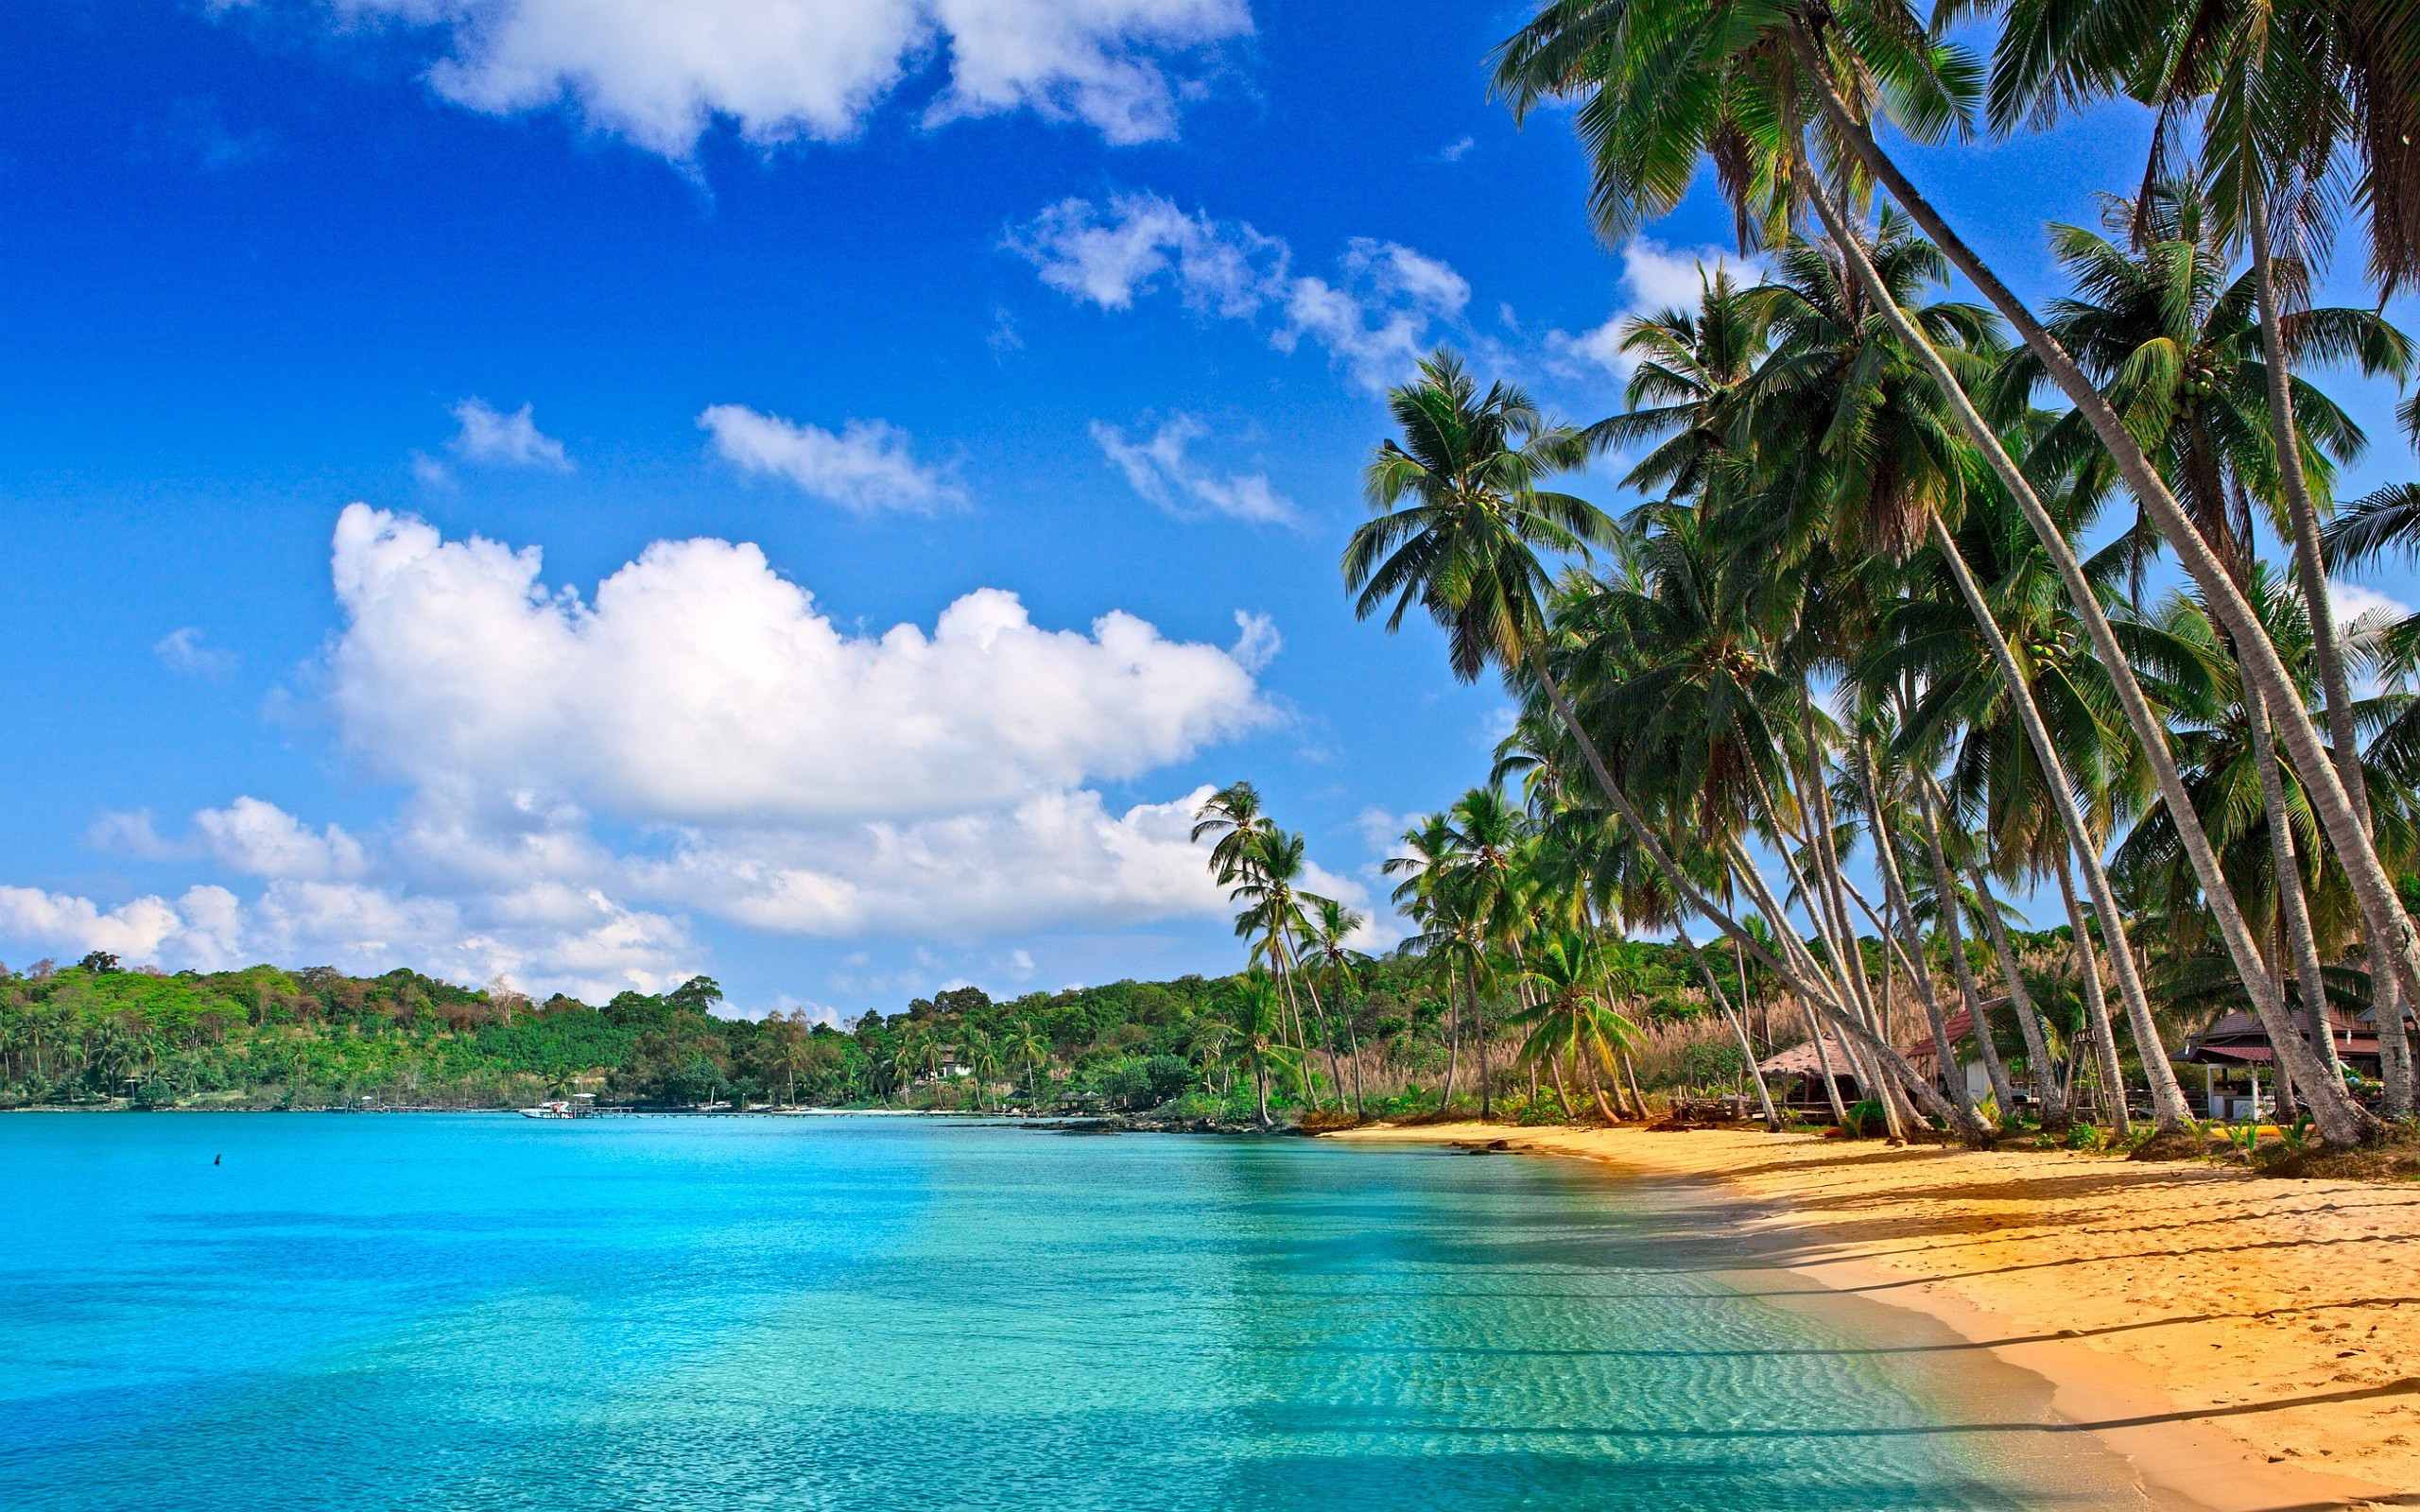 2560x1600 tropical beach wallpapers hd